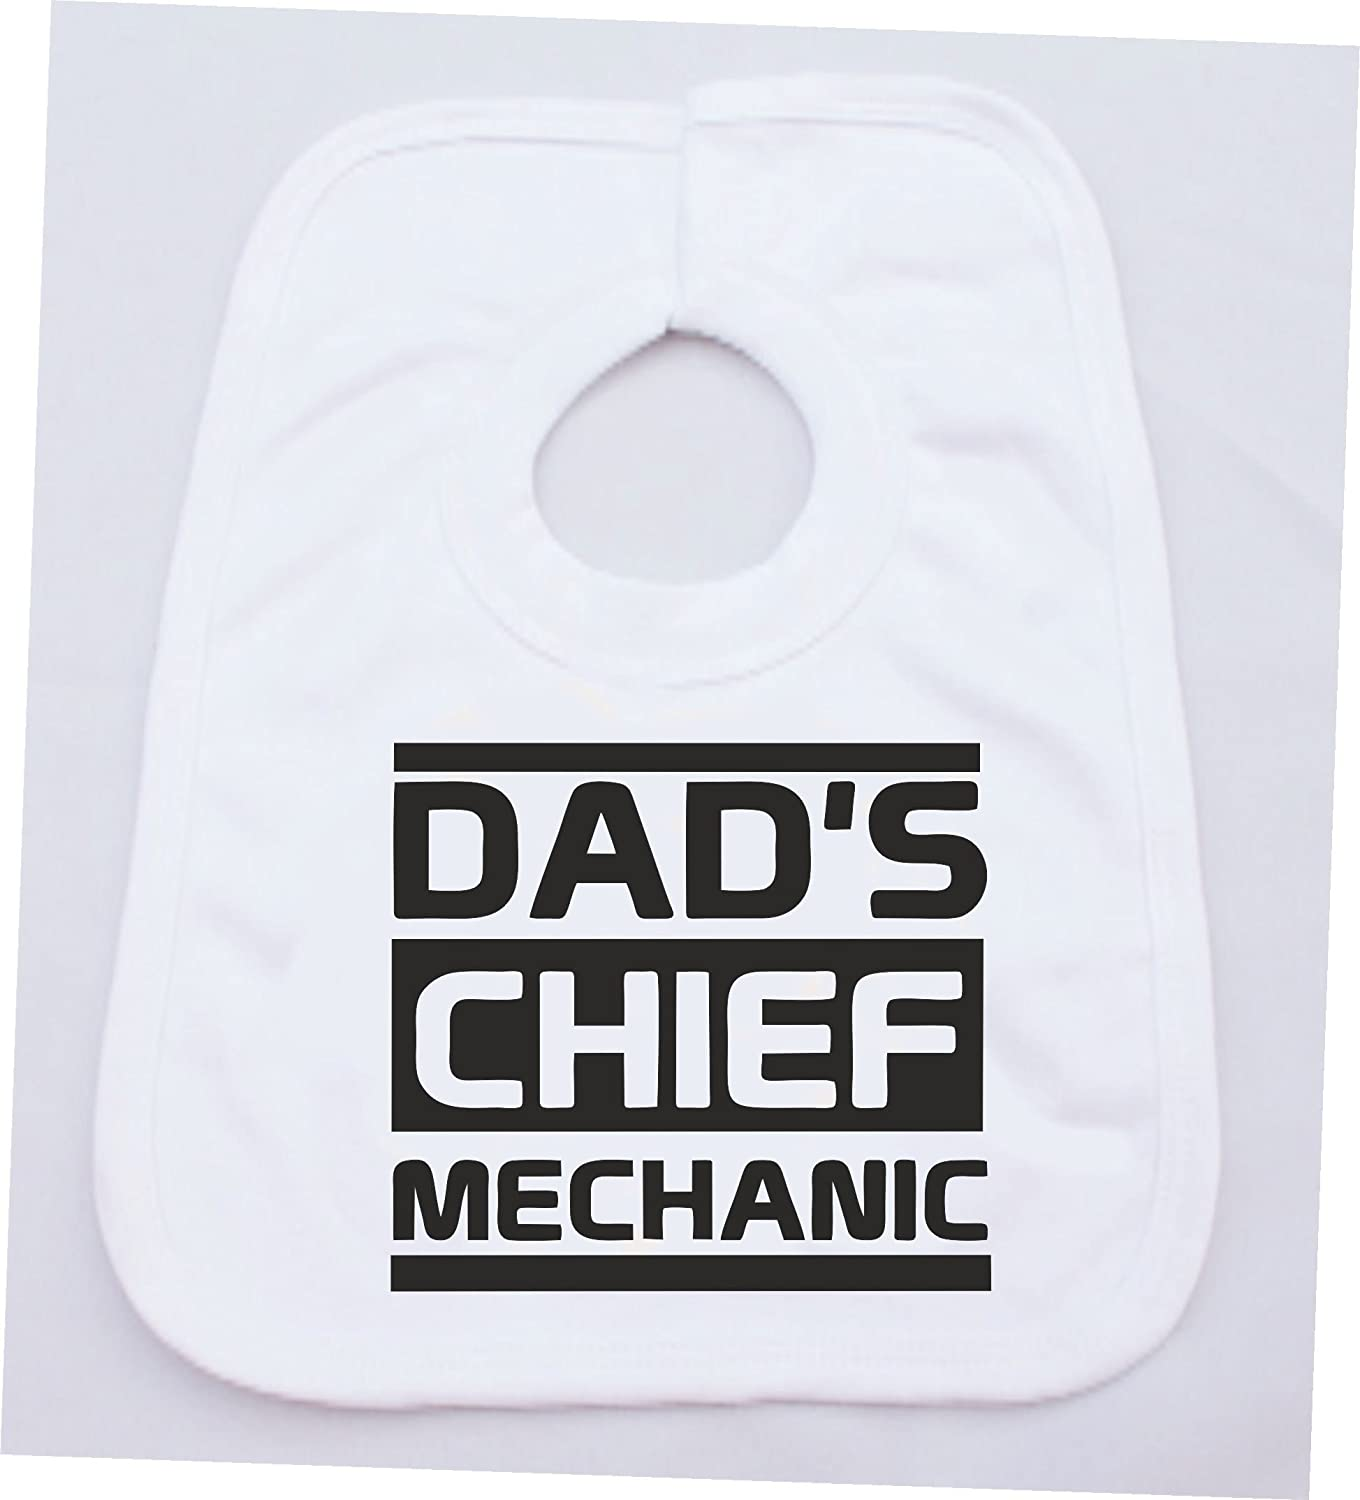 DADS CHIEF MECHANIC FUNNY COTTON WHITE BABY VEST OR BIB